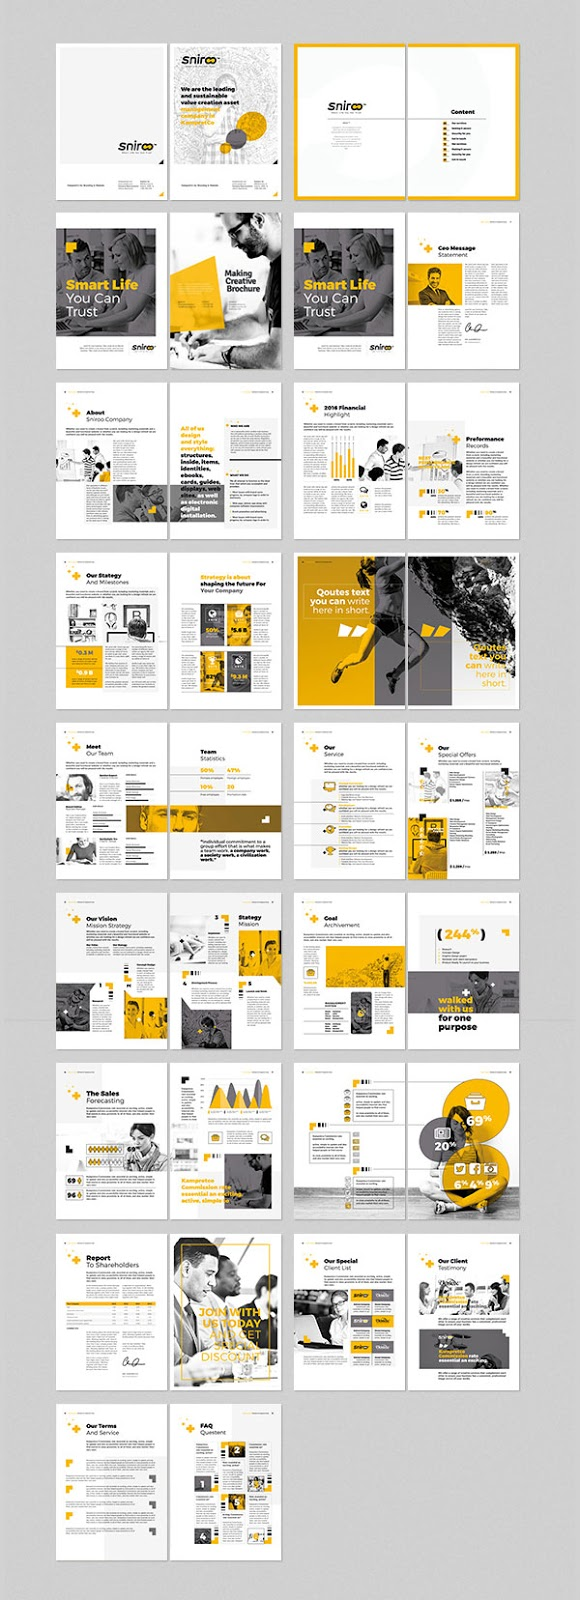 Inspirasi 20+ Desain Brosur dan Katalog Modern - 2 Color Catalogue Layout Ideas